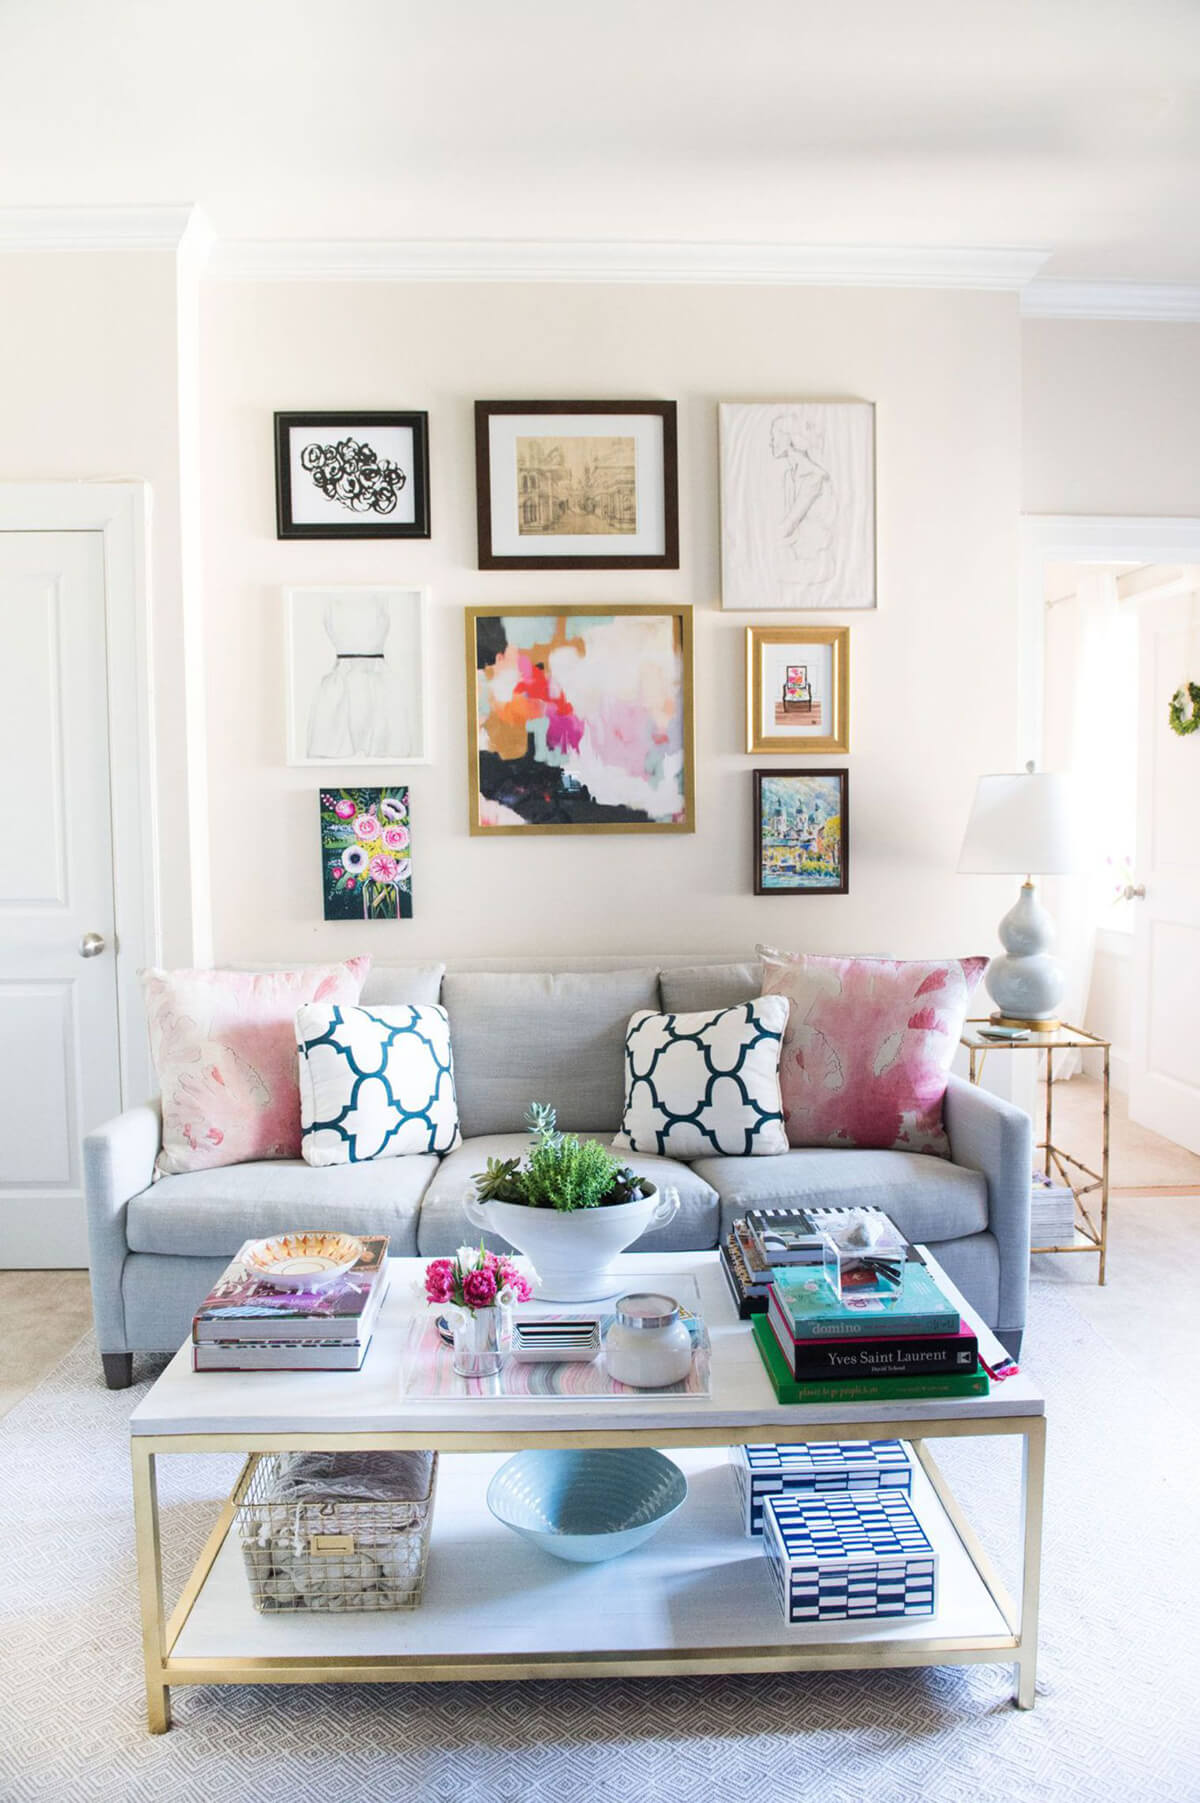 20 Best Small Apartment Living Room Decor And Design Ideas For 2020